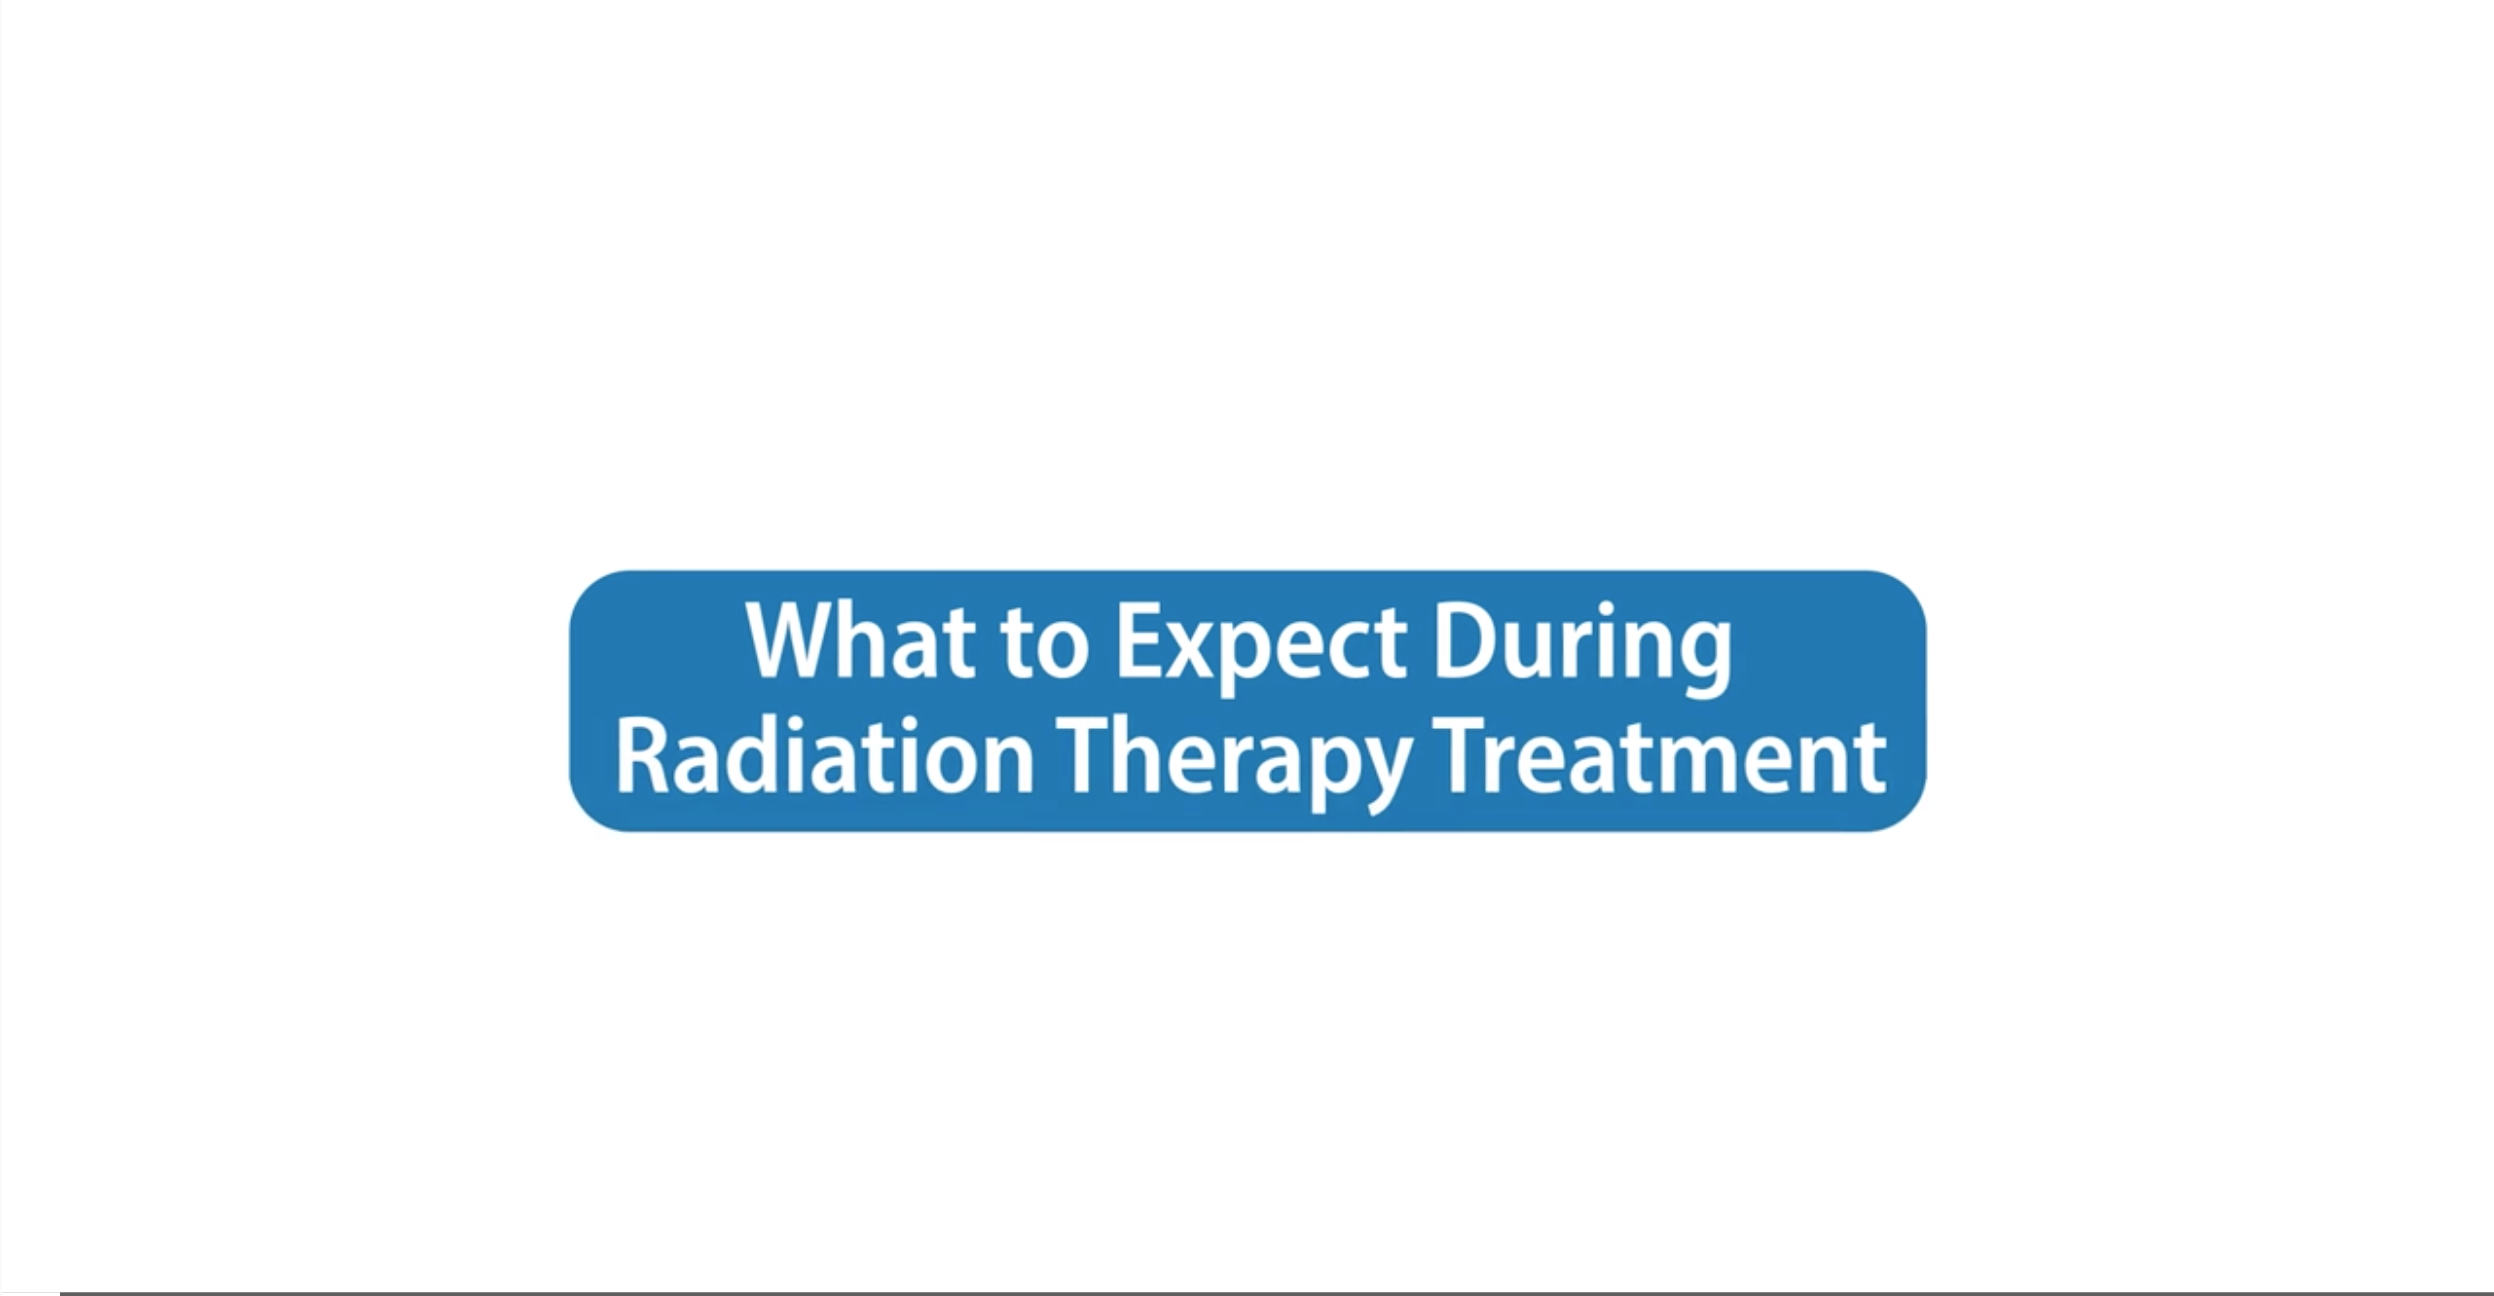 McKesson-Radiation-Expectation